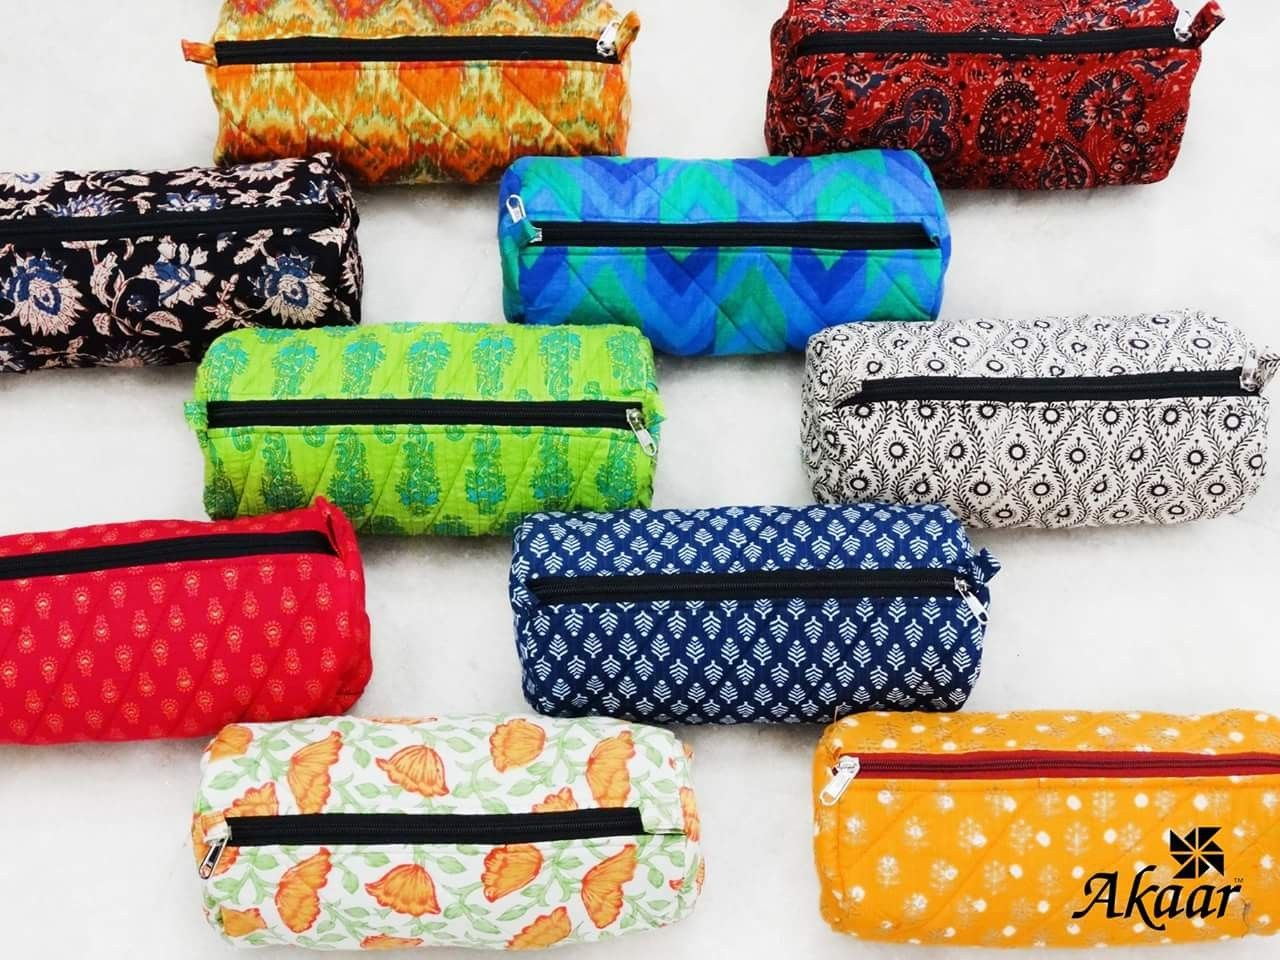 Travelling bags in cotton fabric. Price Rs. 170.00 / US